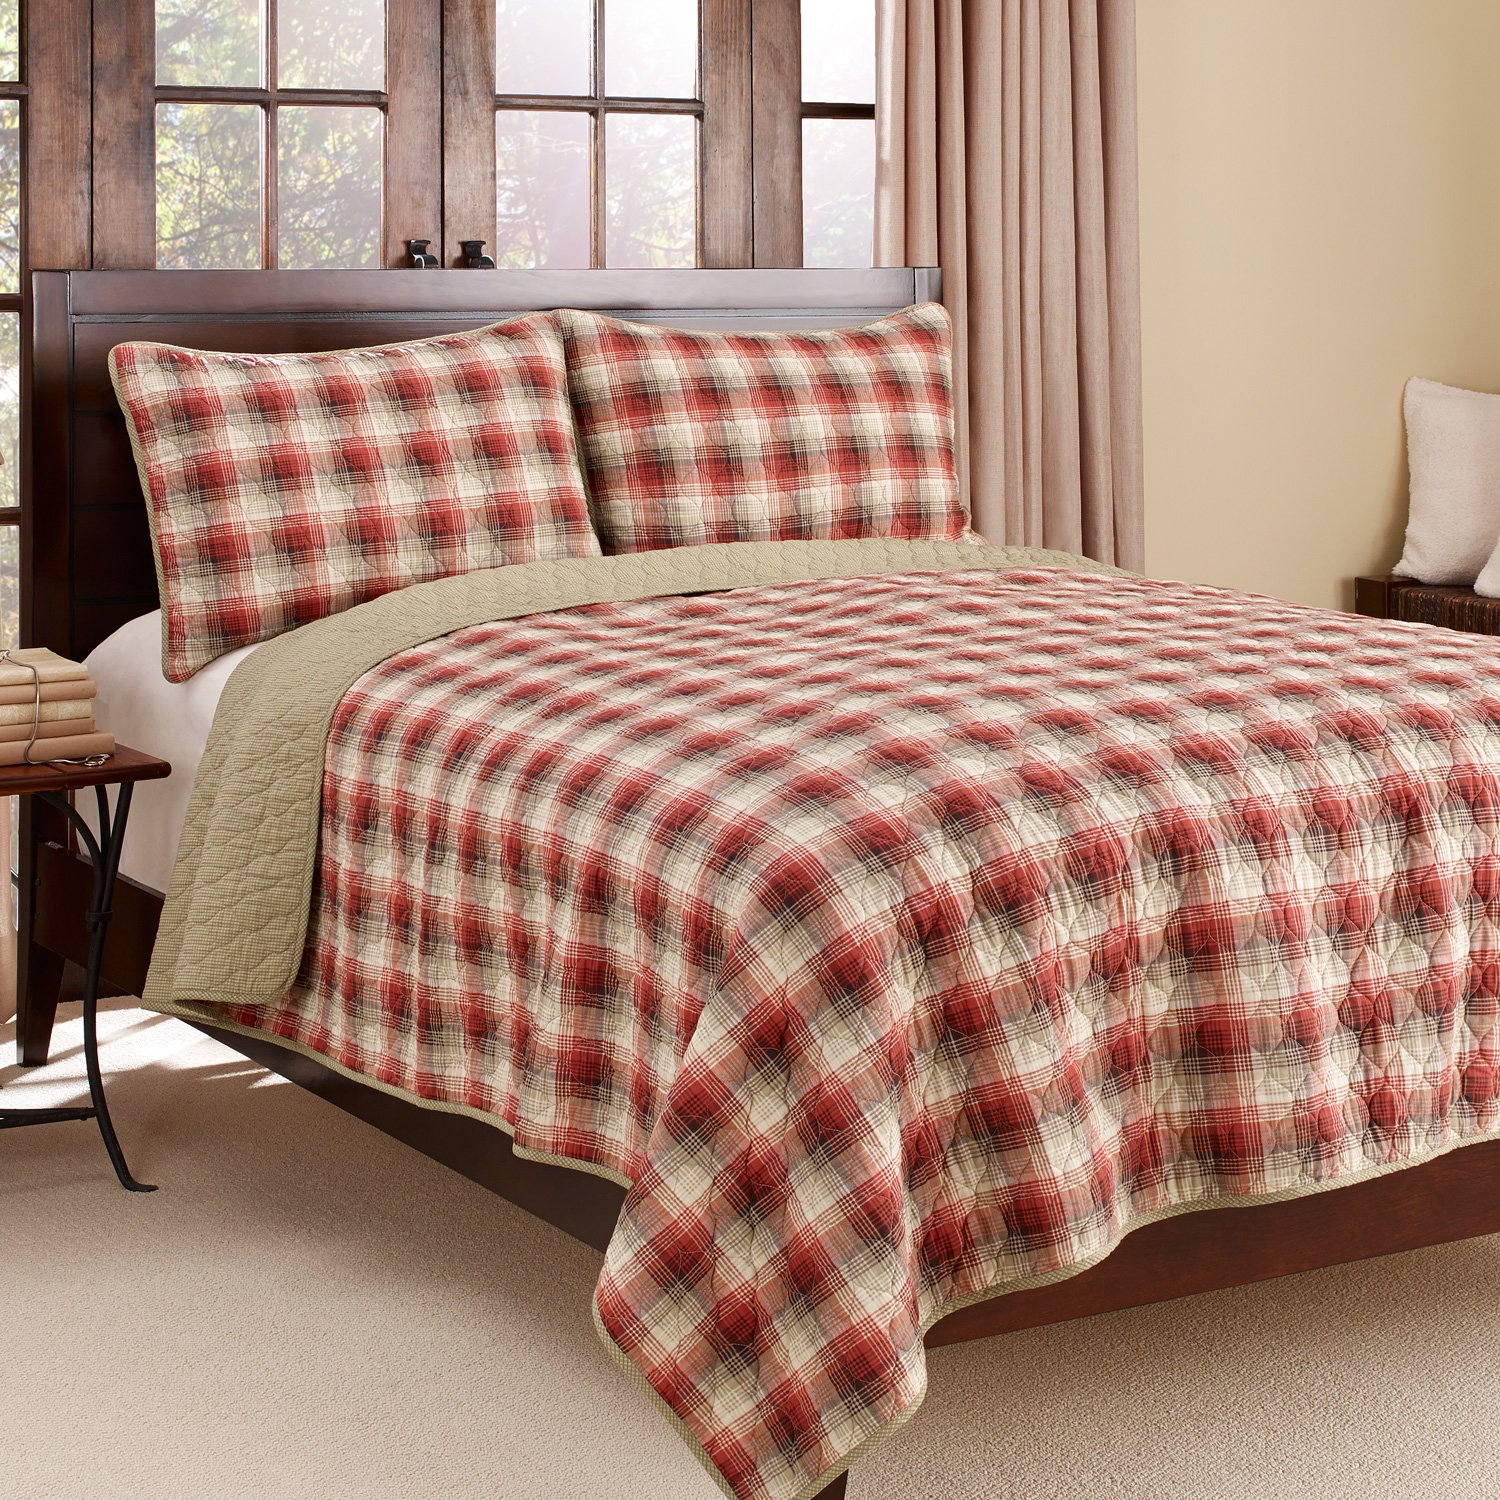 3-Piece Cotton Reversible Quilt Set